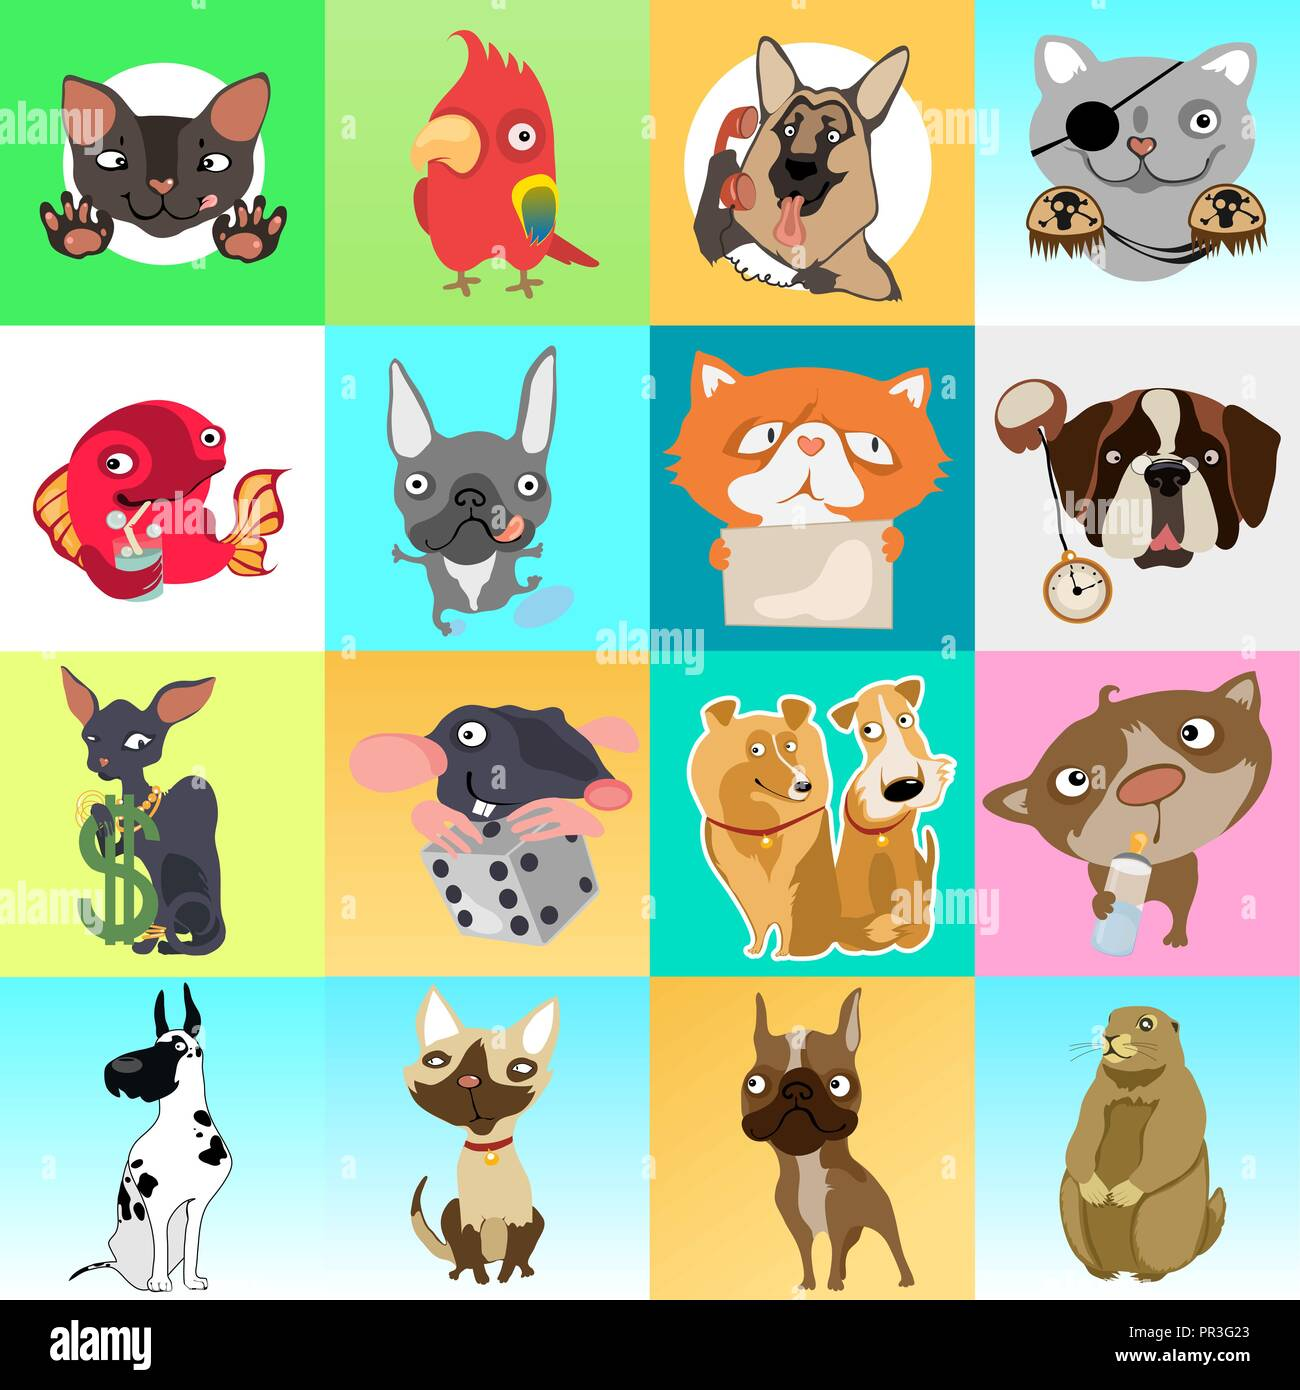 cute poster or greeting card with modern design on theme of funny